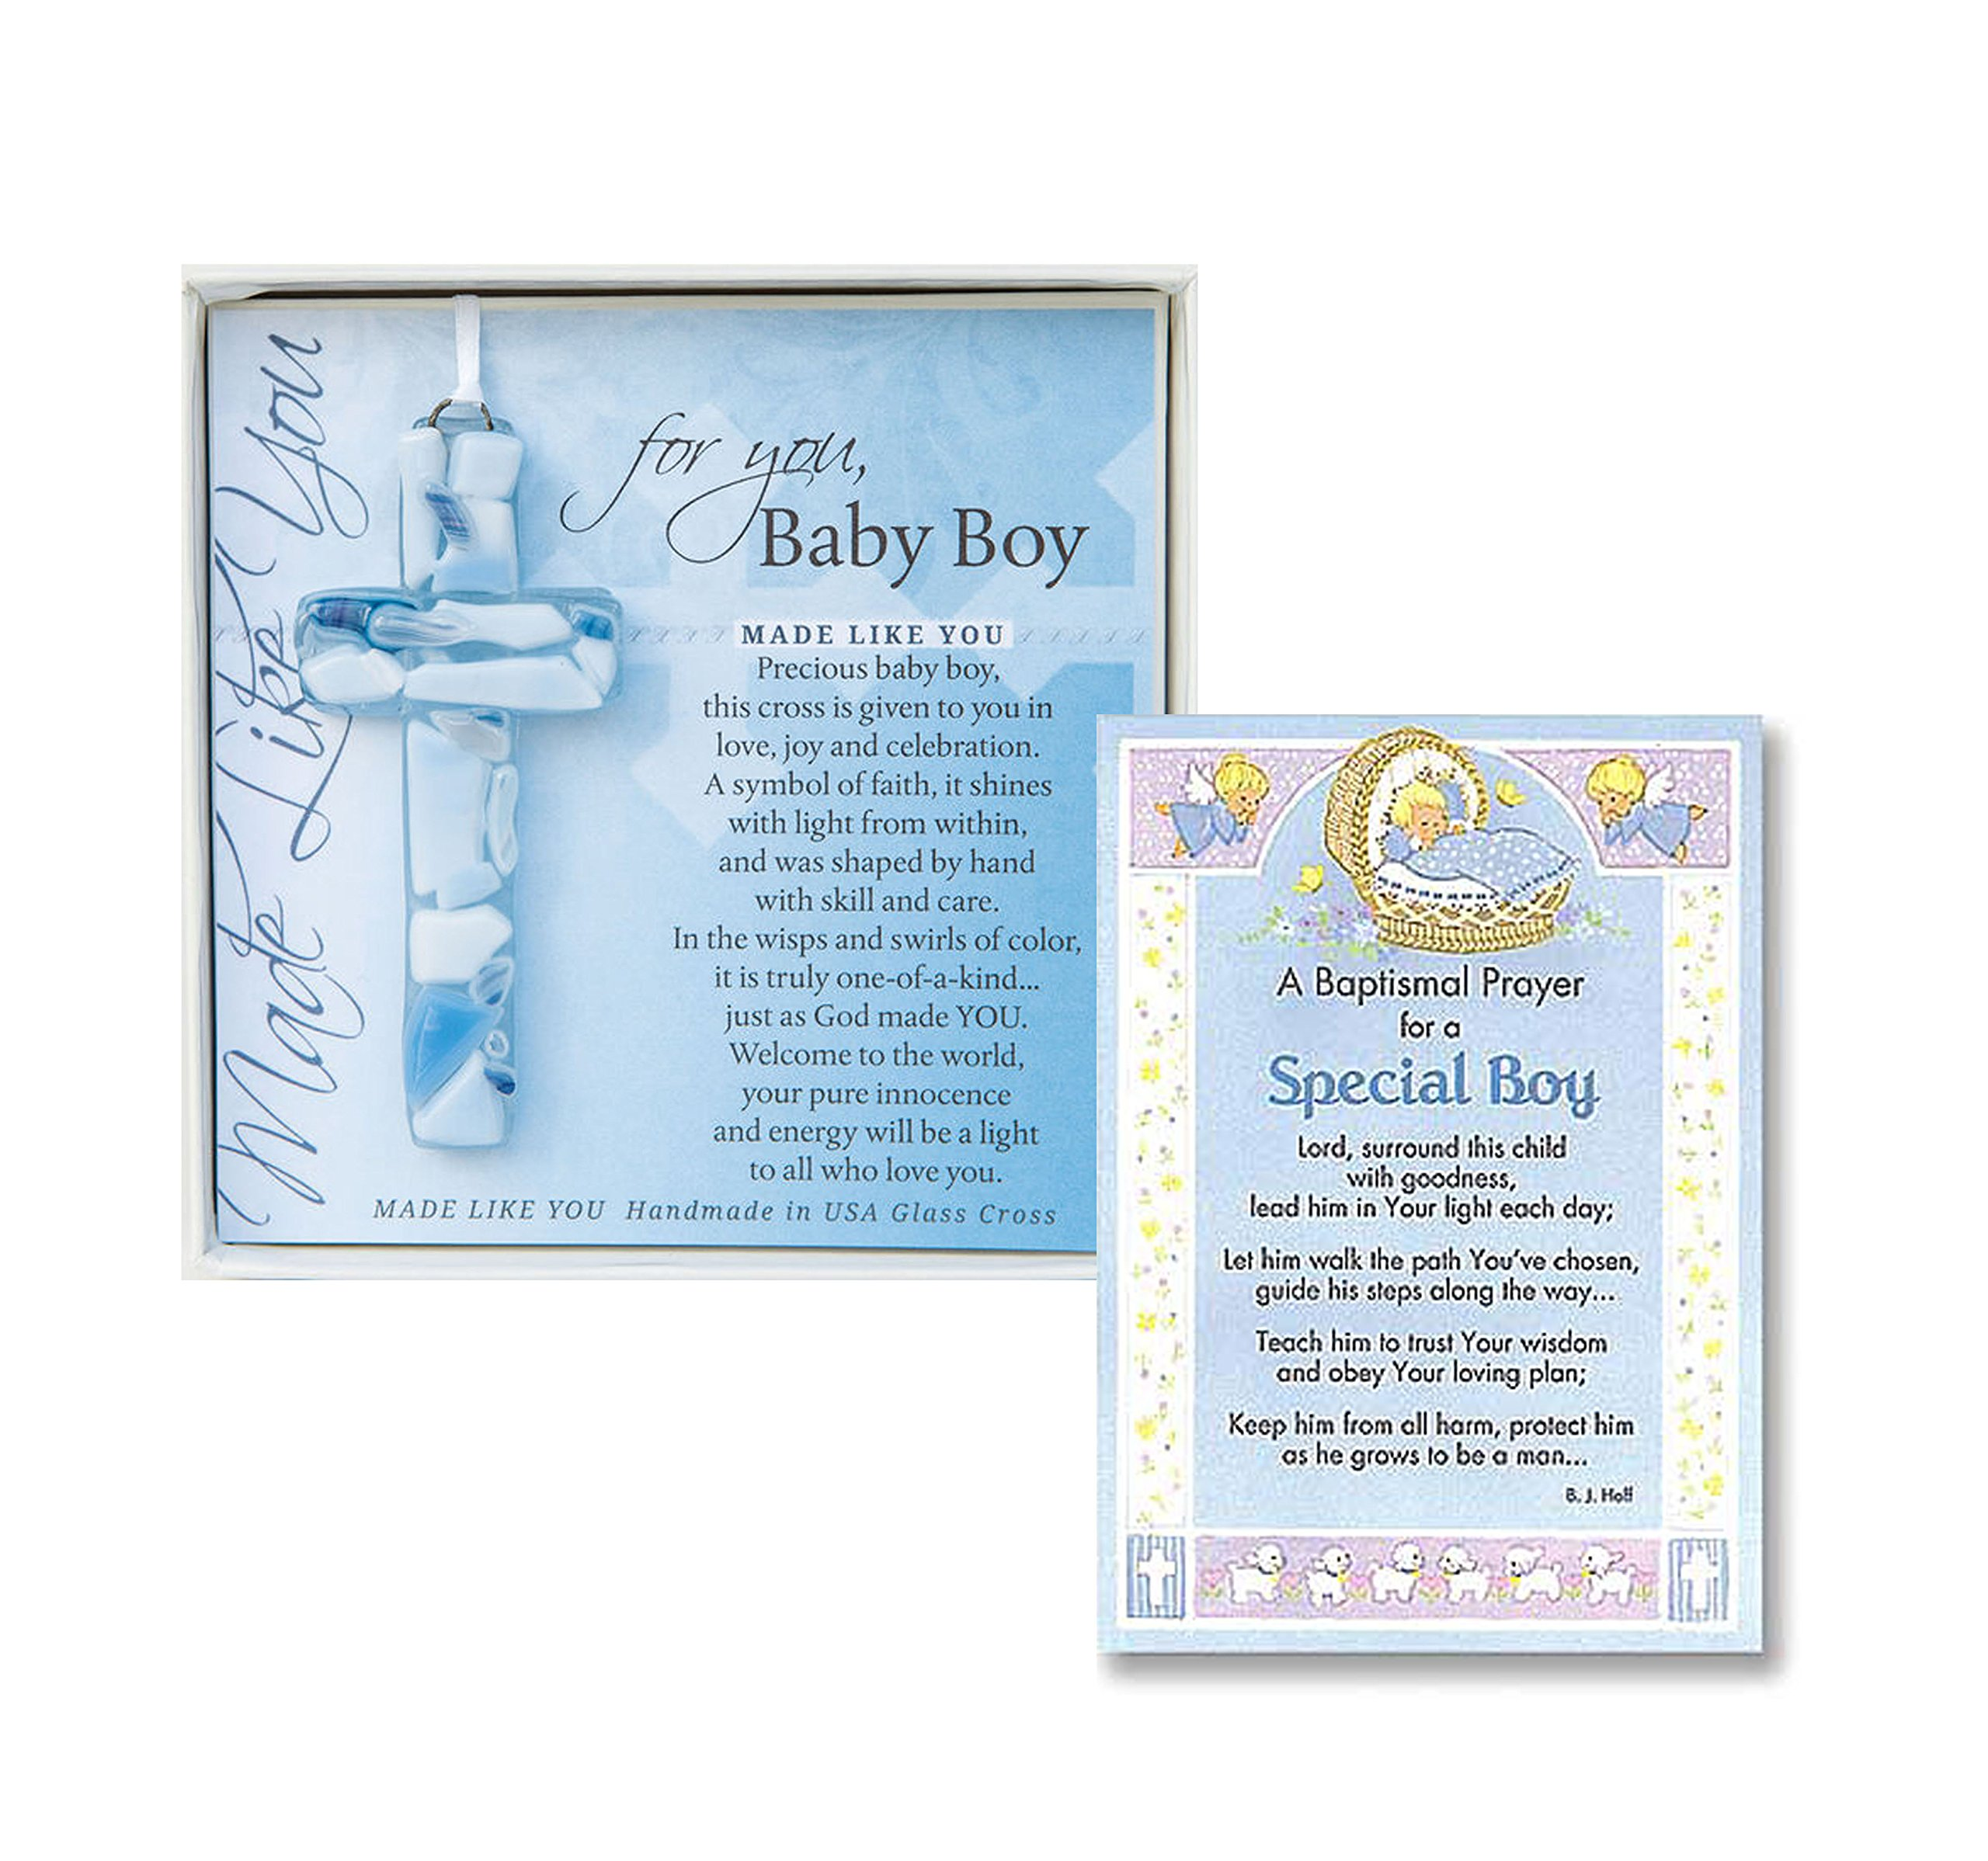 Baptism Wall Cross Christening Gifts For Boys Gift Set Handmade in the USA Glass Cross for